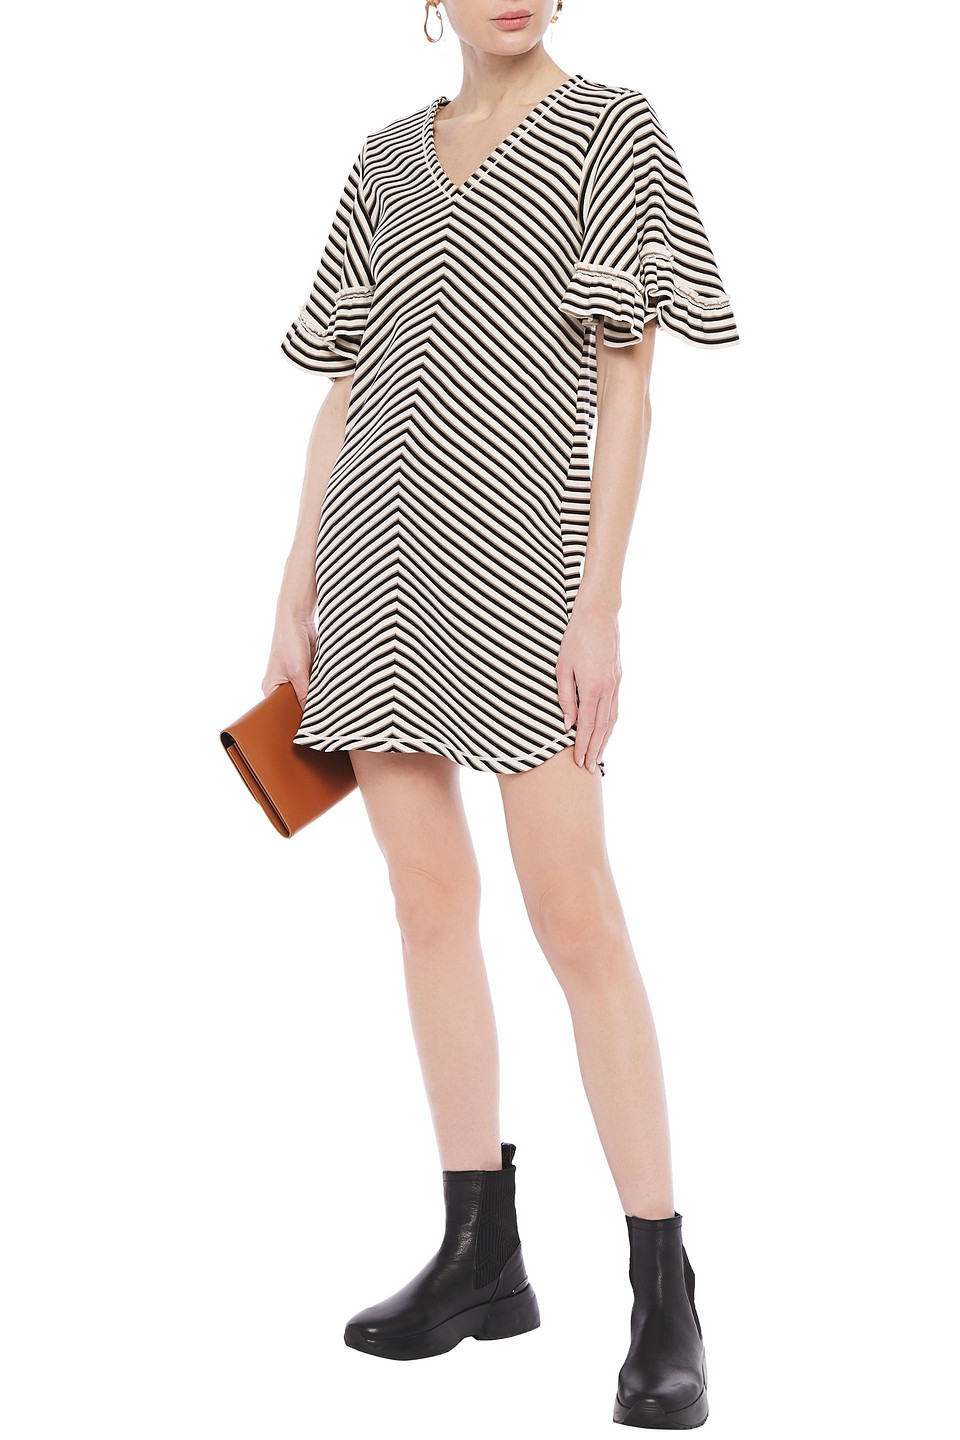 See by Chloé | See By Chloe Woman Ruffle-trimmed Striped Cotton Mini Dress Cream | Clouty